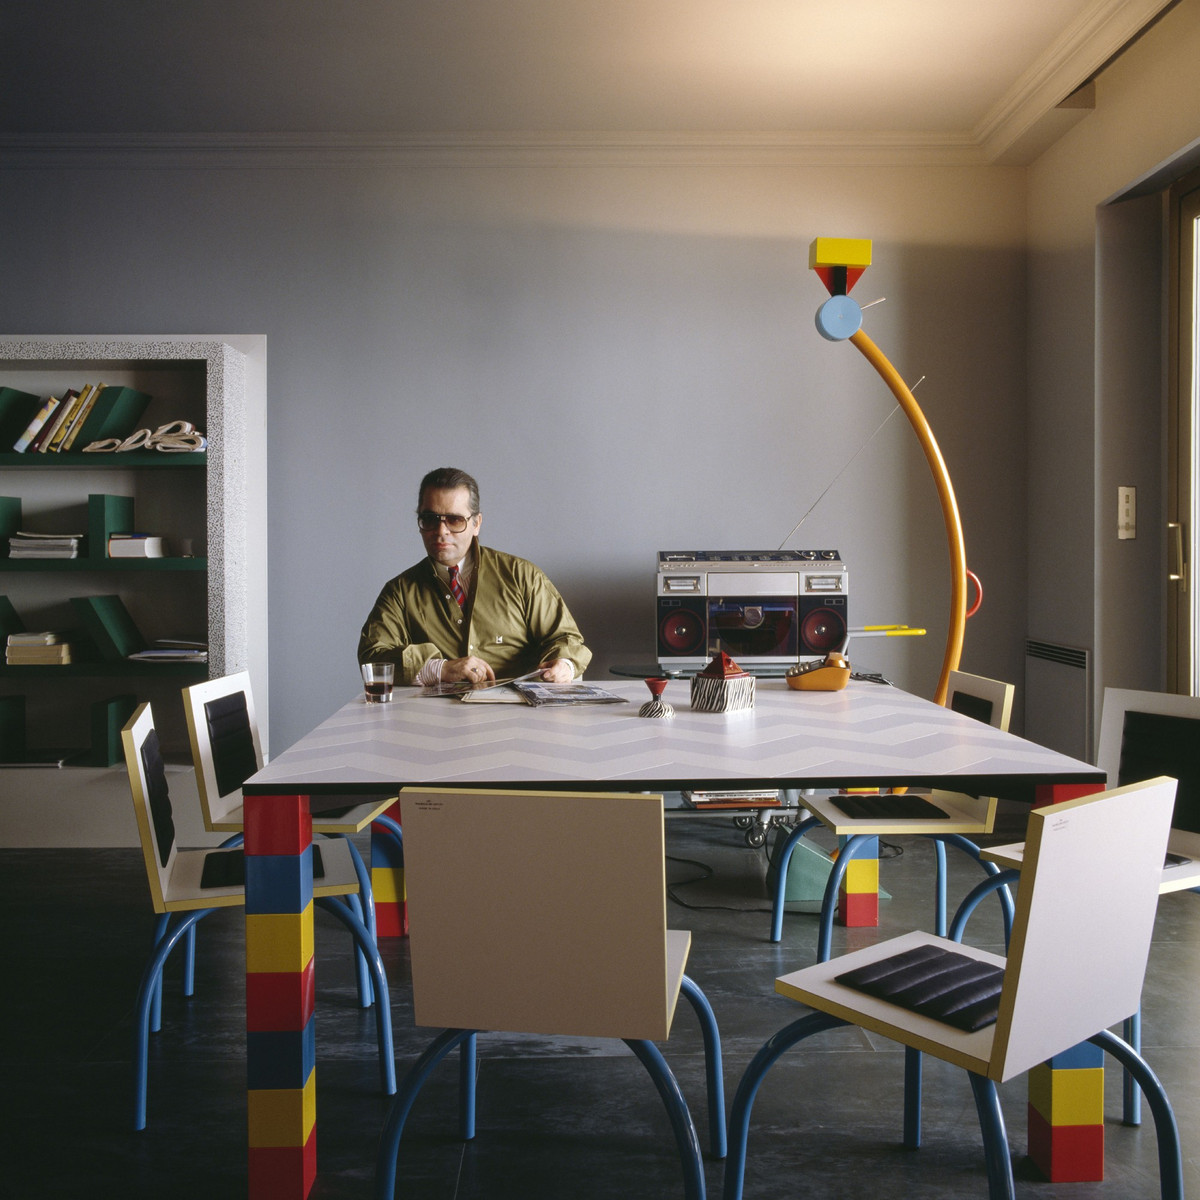 Karl Lagerfeld's Monte Carlo Apartment with designs by Memphis, Monaco, 1982 © Jacques Schumacher © VG Bild-Kunst, Bonn 2021 for all designs by Ettore Sottsass